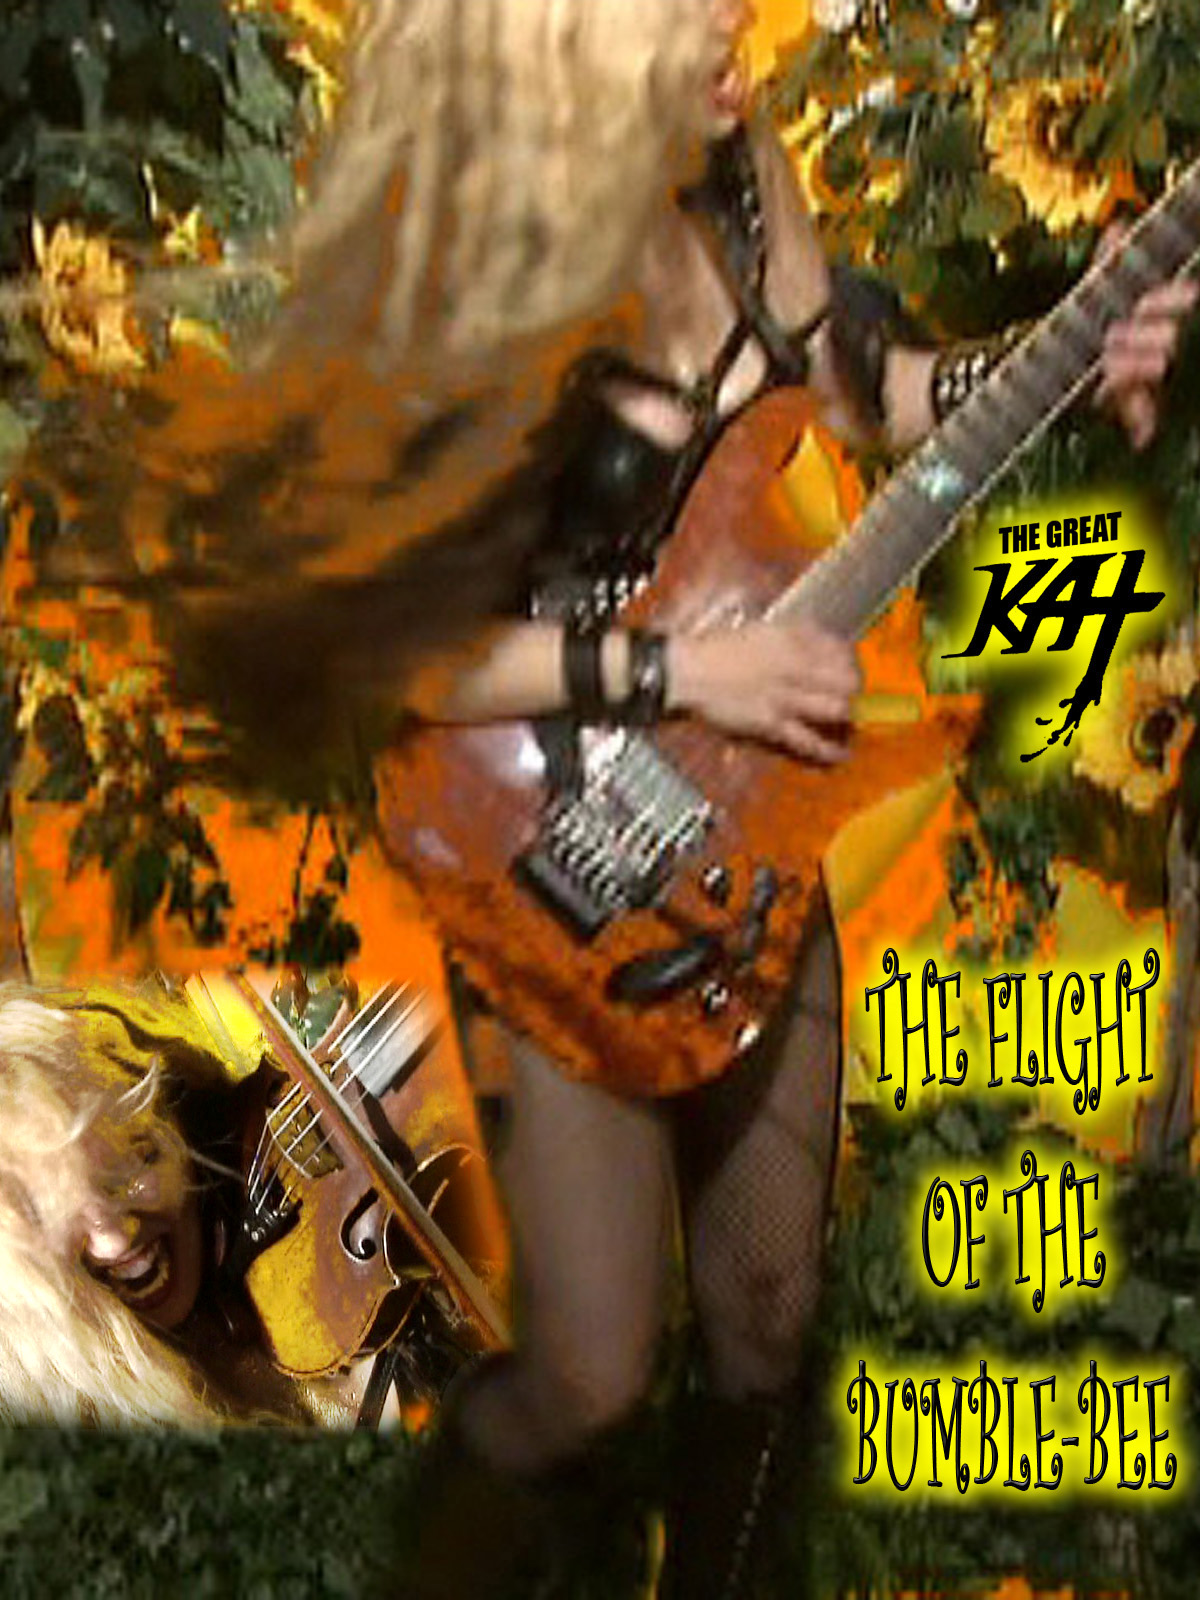 "AMAZON PREMIERES ""THE FLIGHT OF THE BUMBLE-BEE"" Great Kat Music Video! WATCH at https://www.amazon.com/dp/B075FGMK5C The Great Kat ""Top 10 Fastest Shredders Of All Time"" (Guitar One Mag)/Juilliard grad Violin Goddess shreds her signature virtuoso showpiece ""The Flight Of The Bumble-Bee"" with finger-blistering virtuosity on both guitar and violin. Guitar Player Mag declares ""Kat may be one of the fastest guitarists of all time."" The Great Kat is the only guitar/violin double virtuoso since Paganini!"